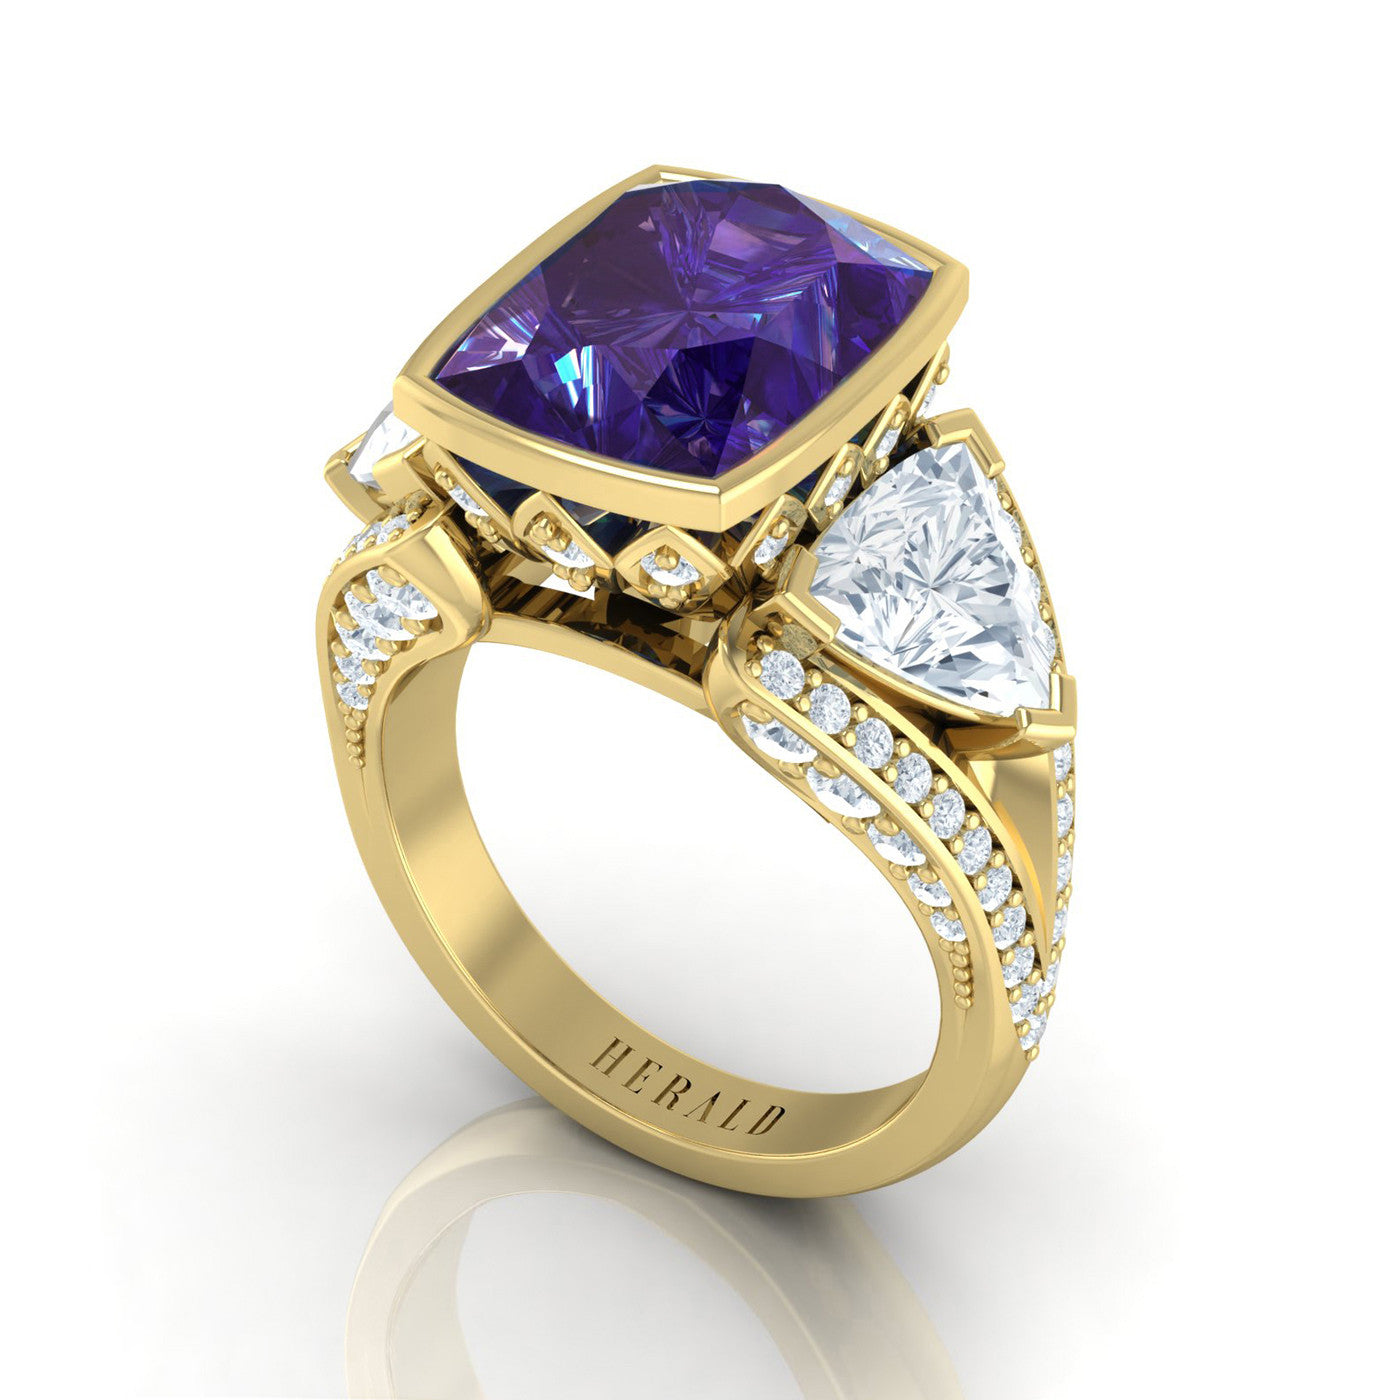 Tanzanite and Diamond Ring in 18kt yellow gold